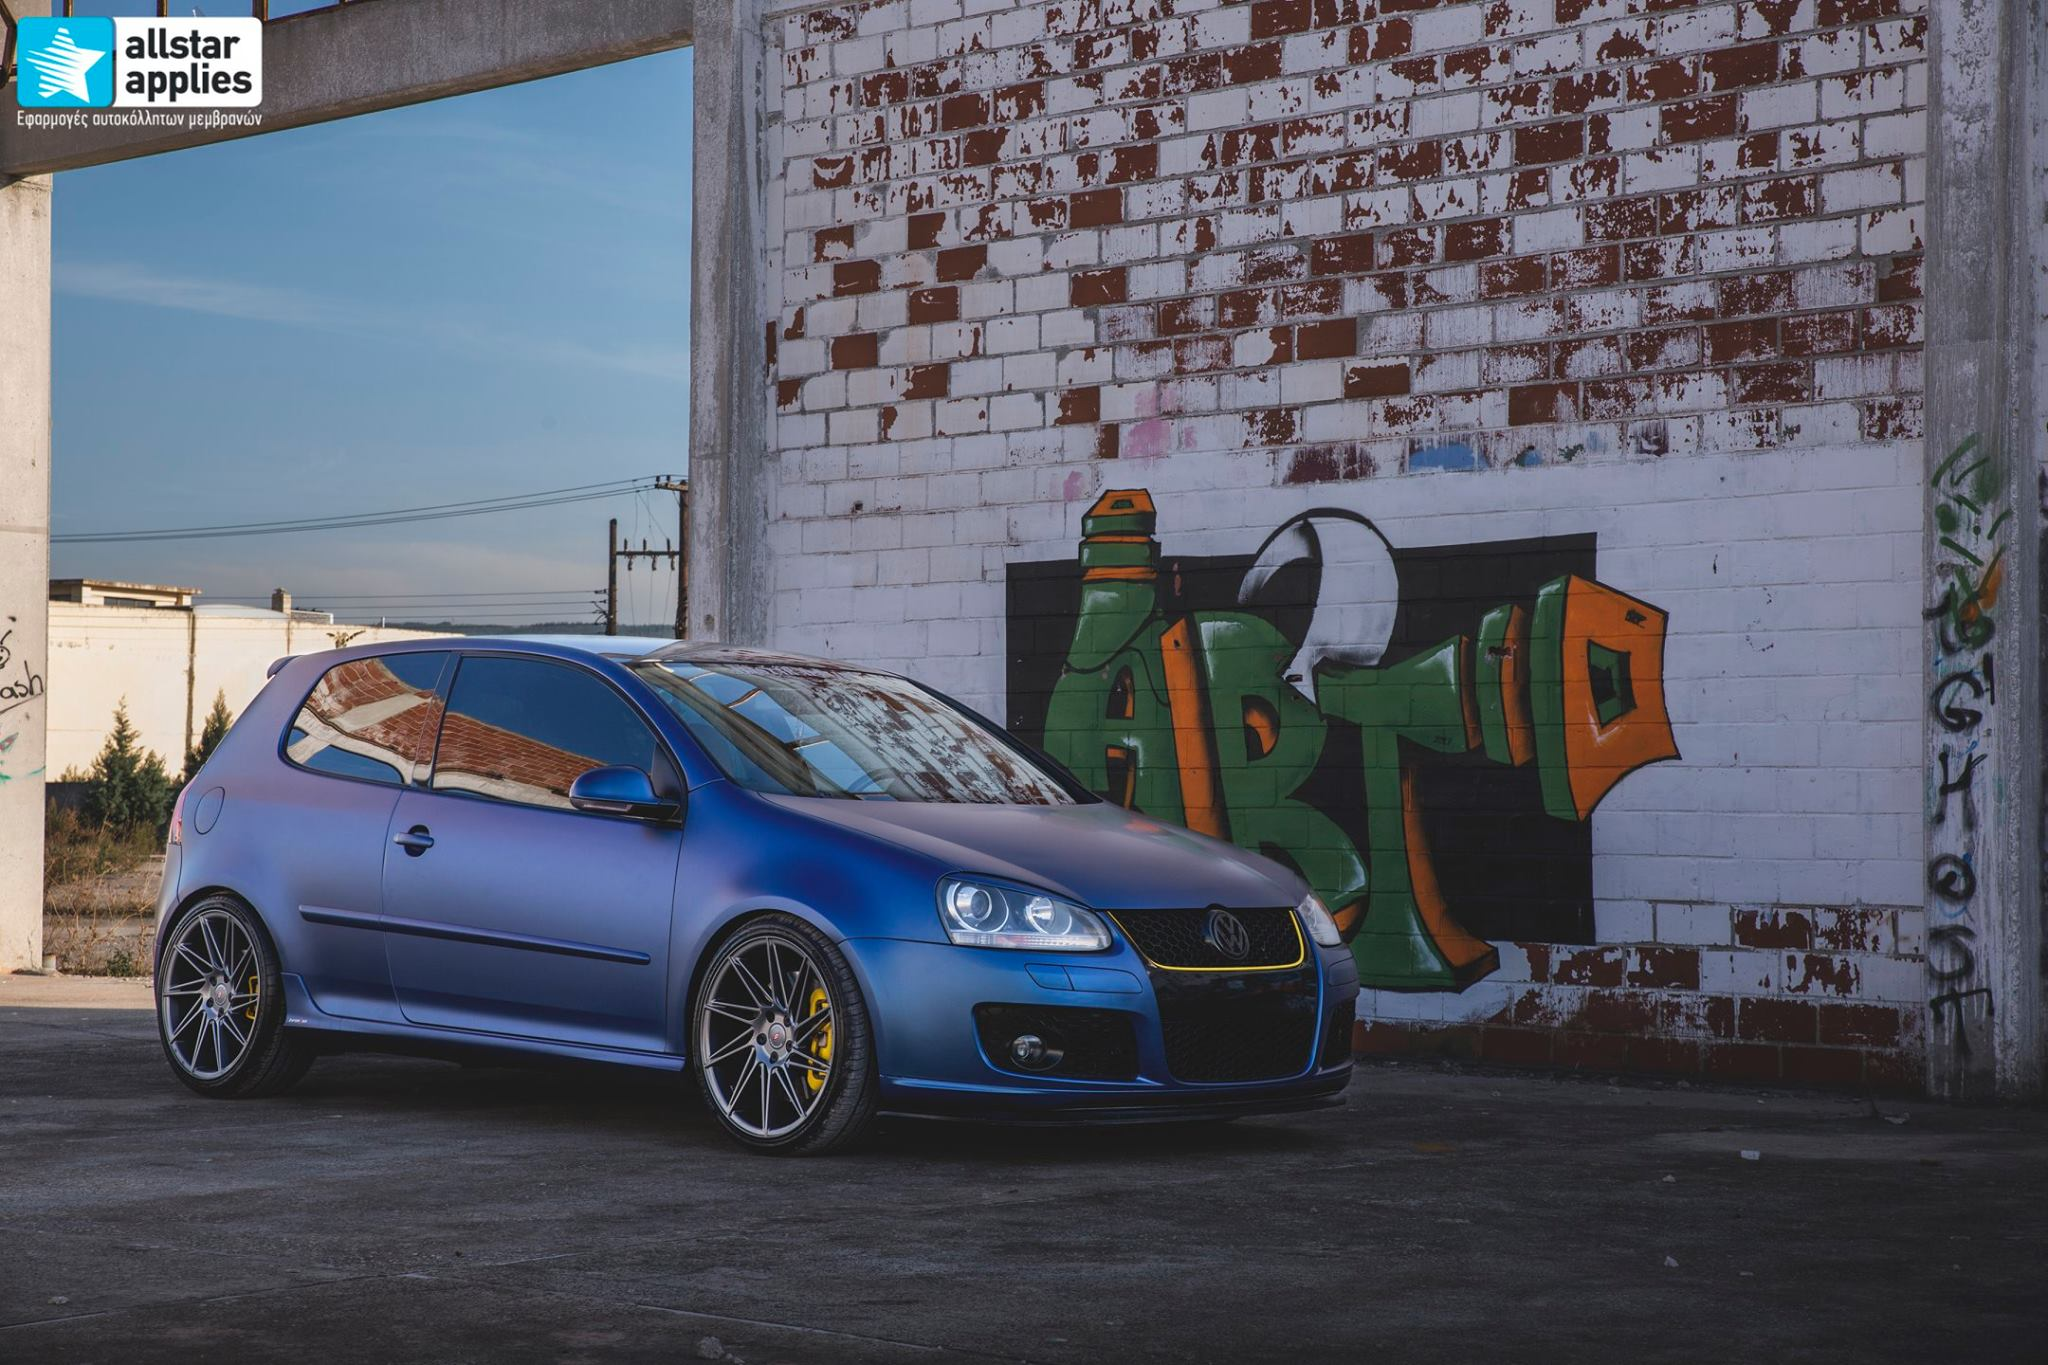 VW Golf 5 - Matt Trenton Blue (1)